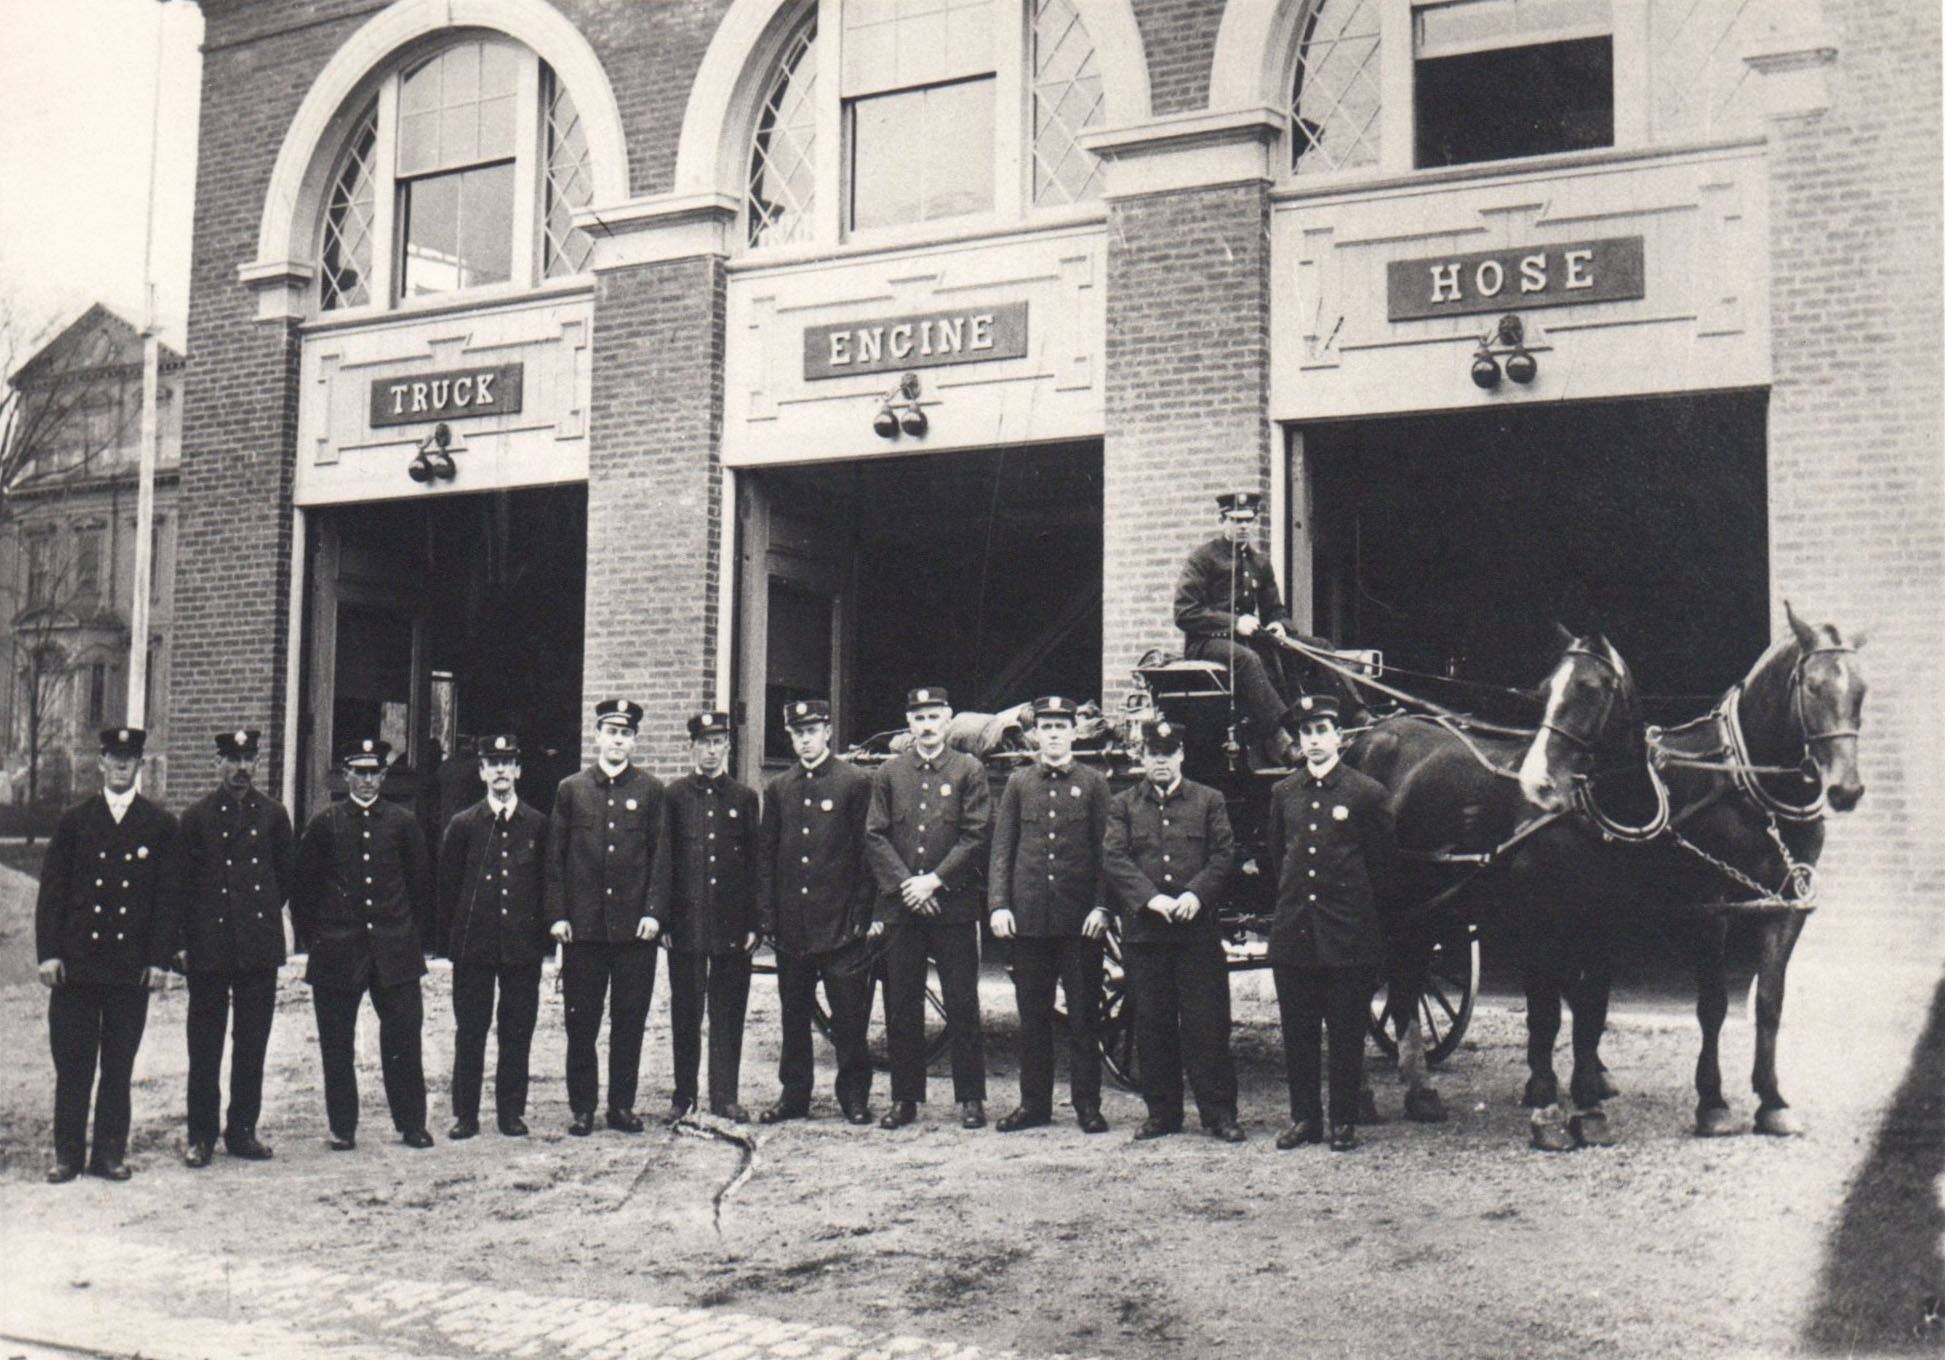 Photo provided by the Ipswich Museum of the Ipswich MA fire department